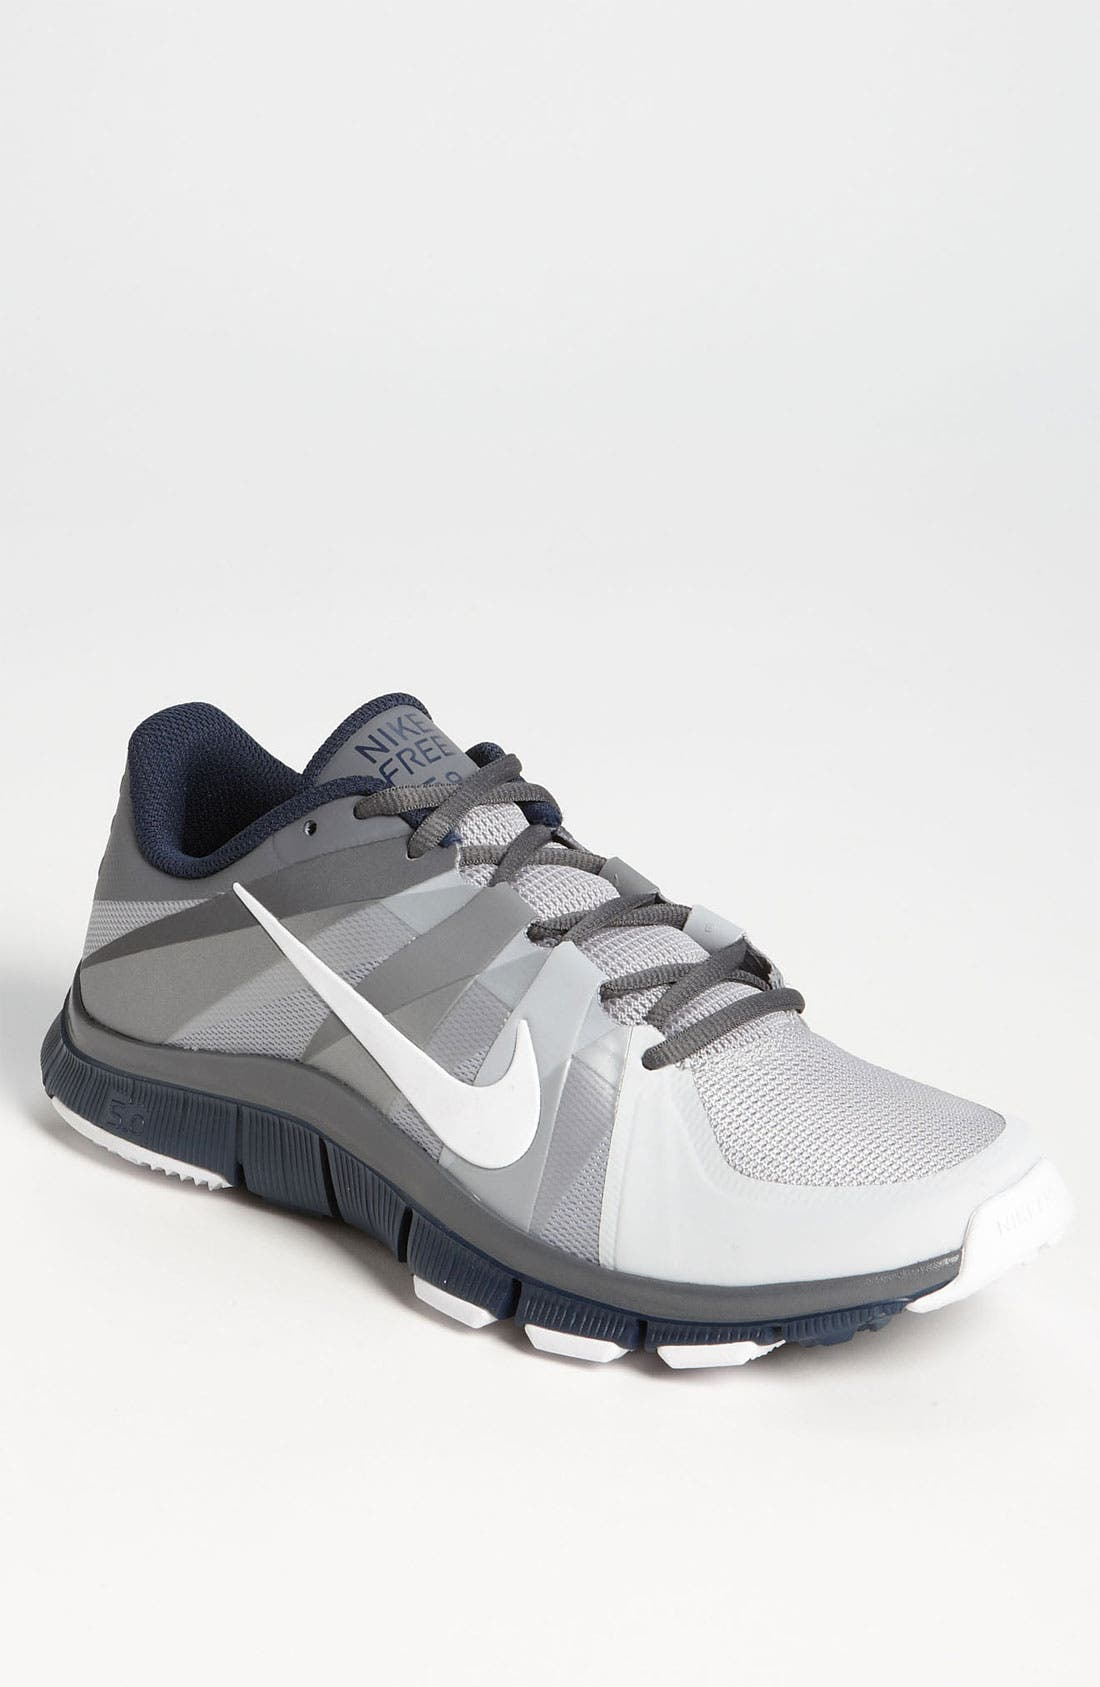 Nike Free Trainer 5.0 Marine Tb / Couettes / Couettes Blanches